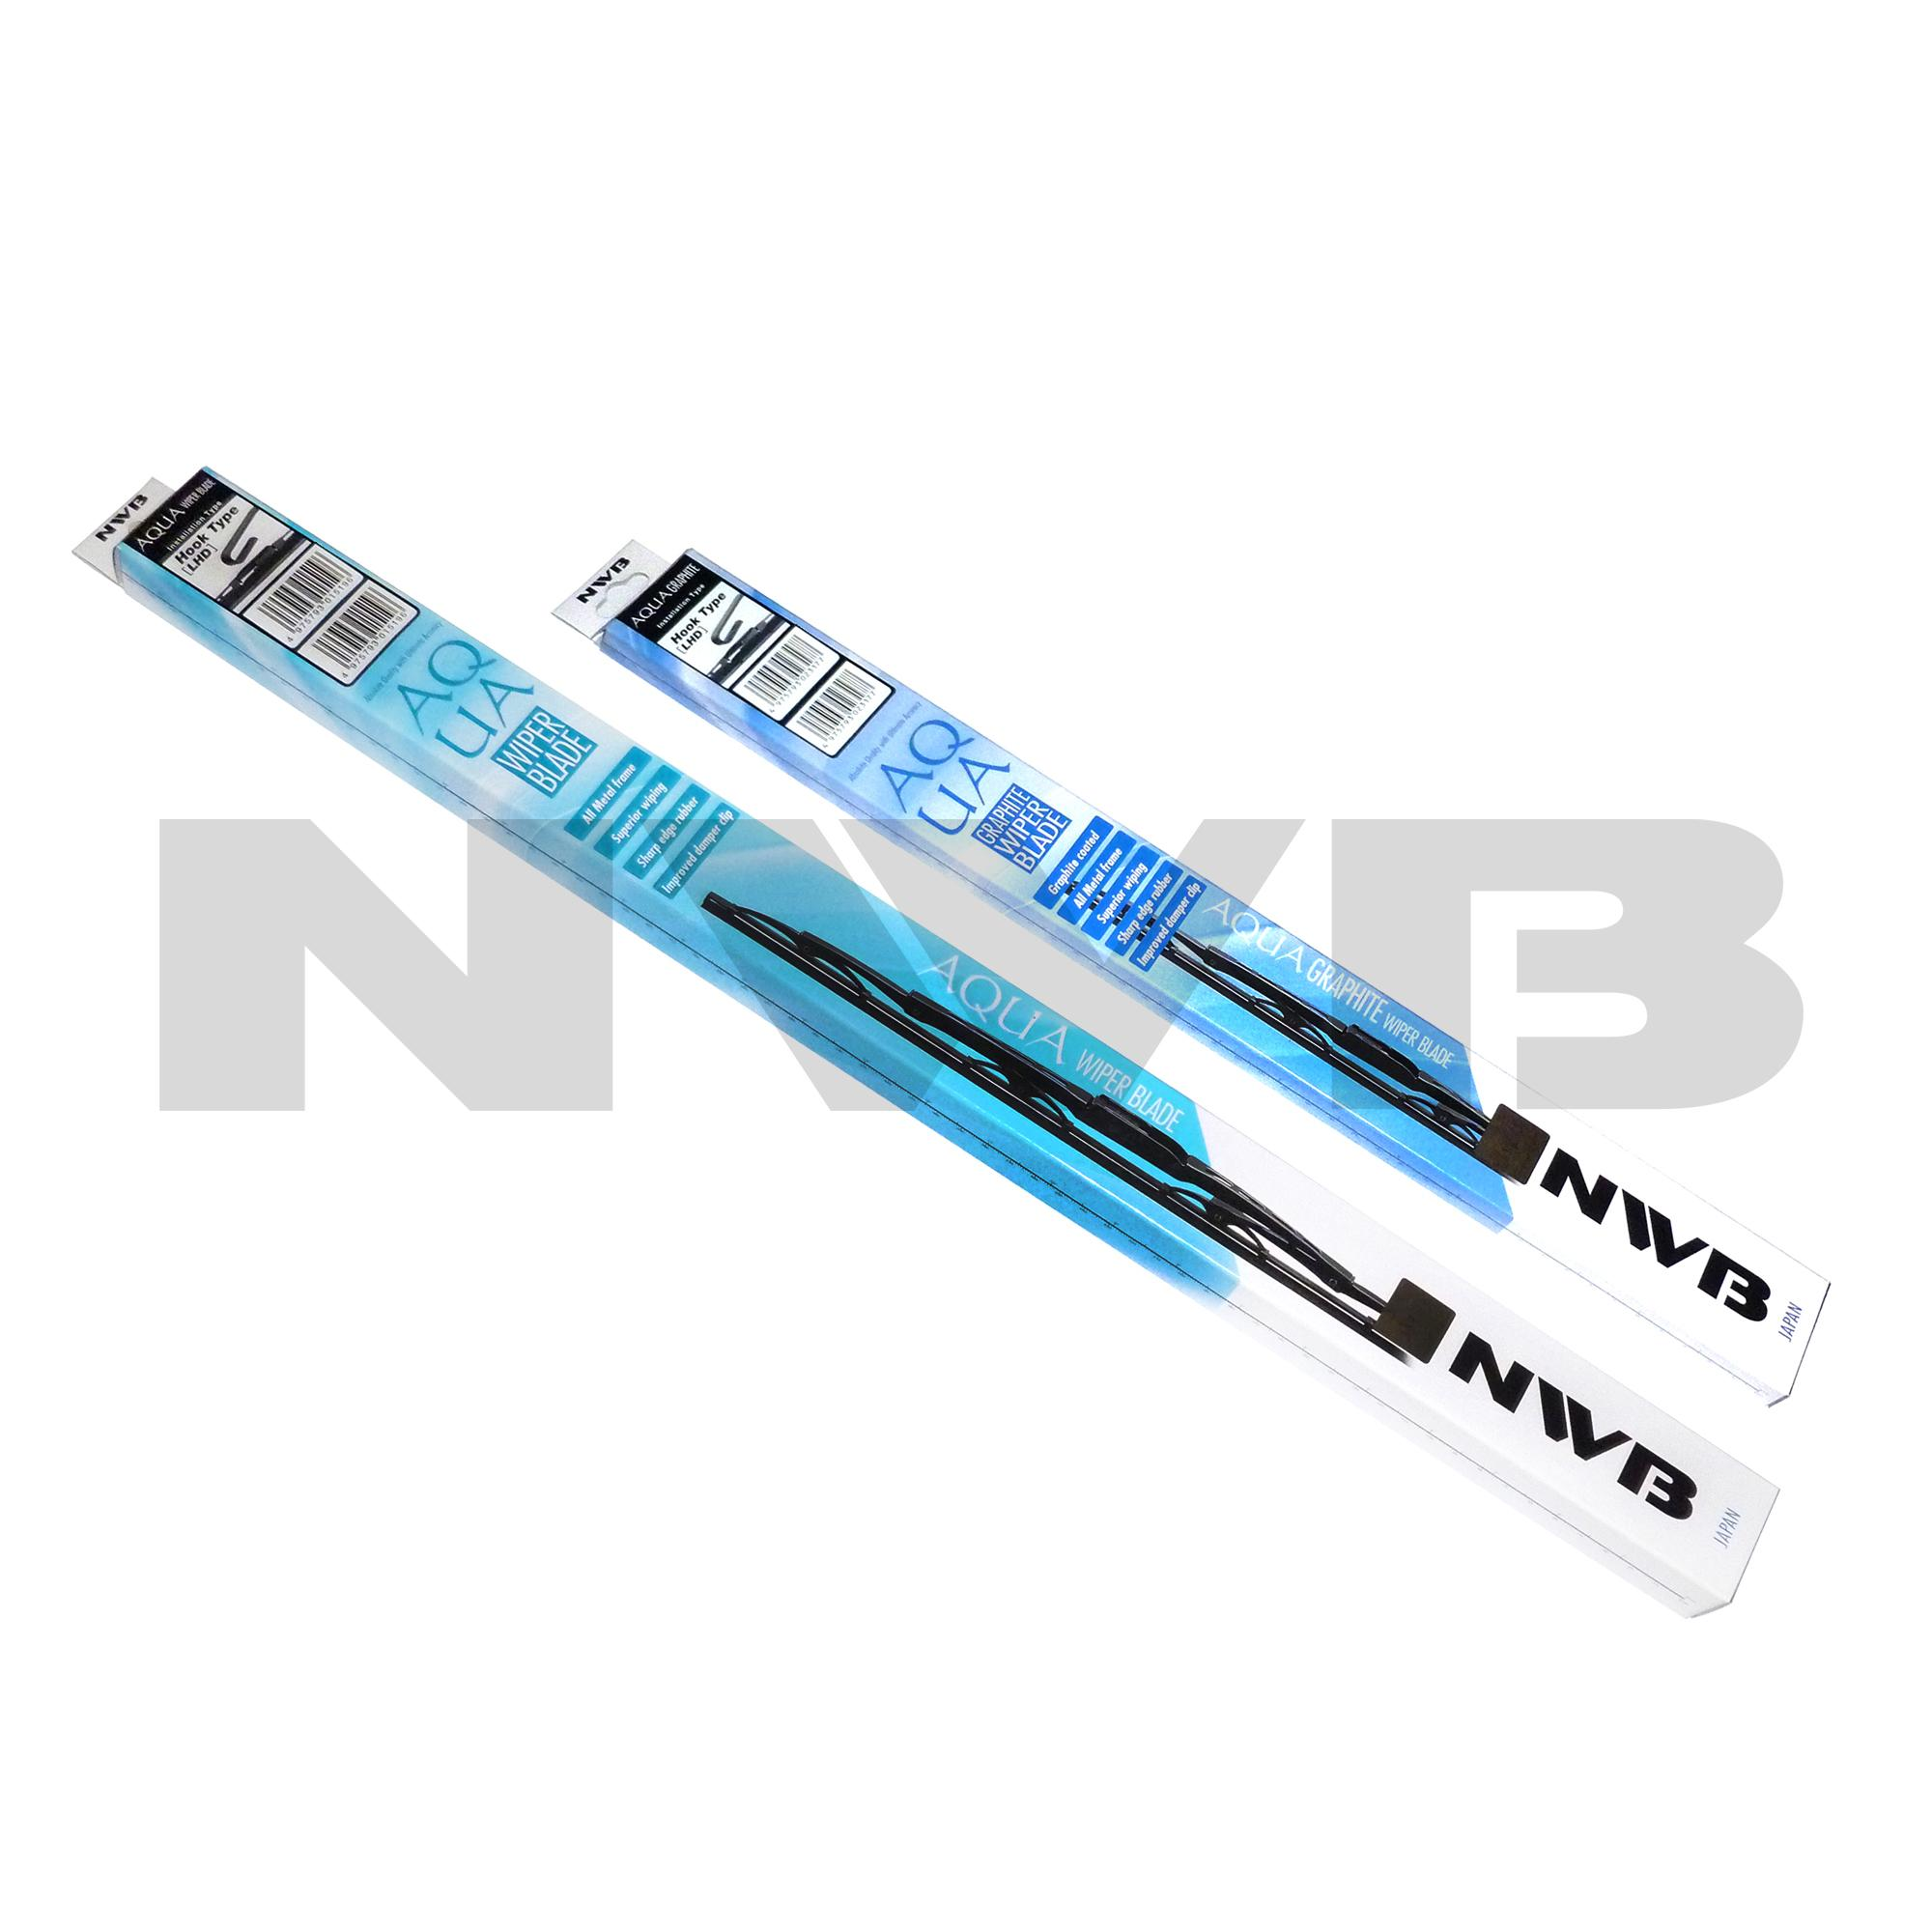 NWB AQUA Wiper Blade for Hyundai Tucson 2010-2015 - (SET)